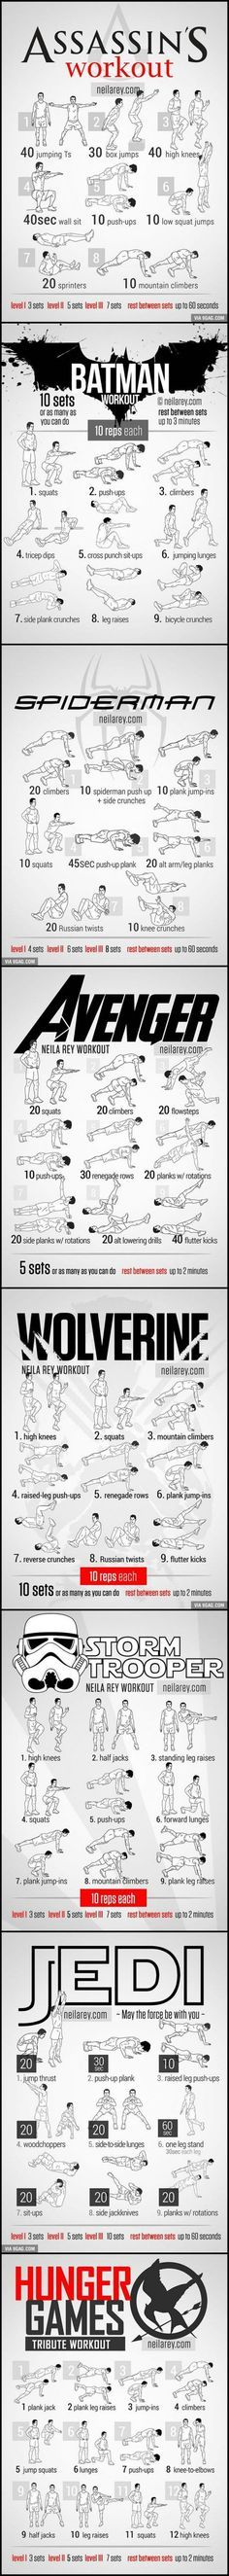 quick workouts | effective workouts | most effective workouts | most effective weight loss workouts | quick workouts at home | quick effective workouts | quick full body workout | yourfitnessoutlet.com